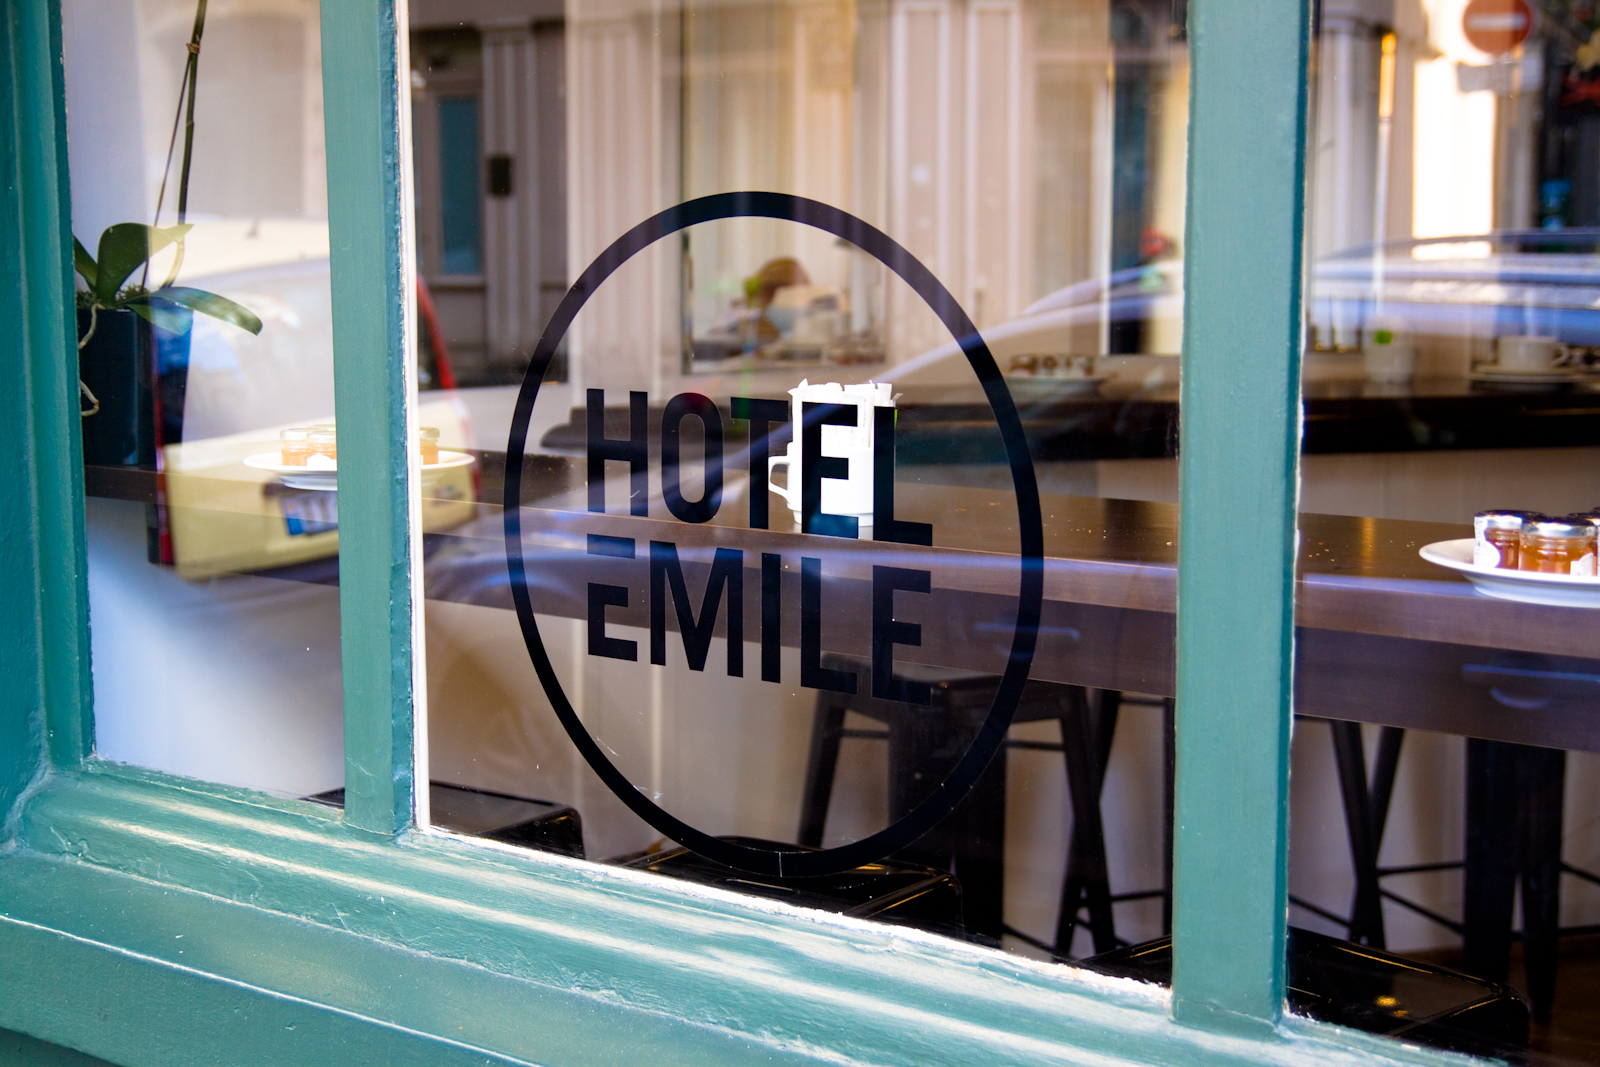 Hotel Emile  -  2, rue Malher   75004 Paris – France